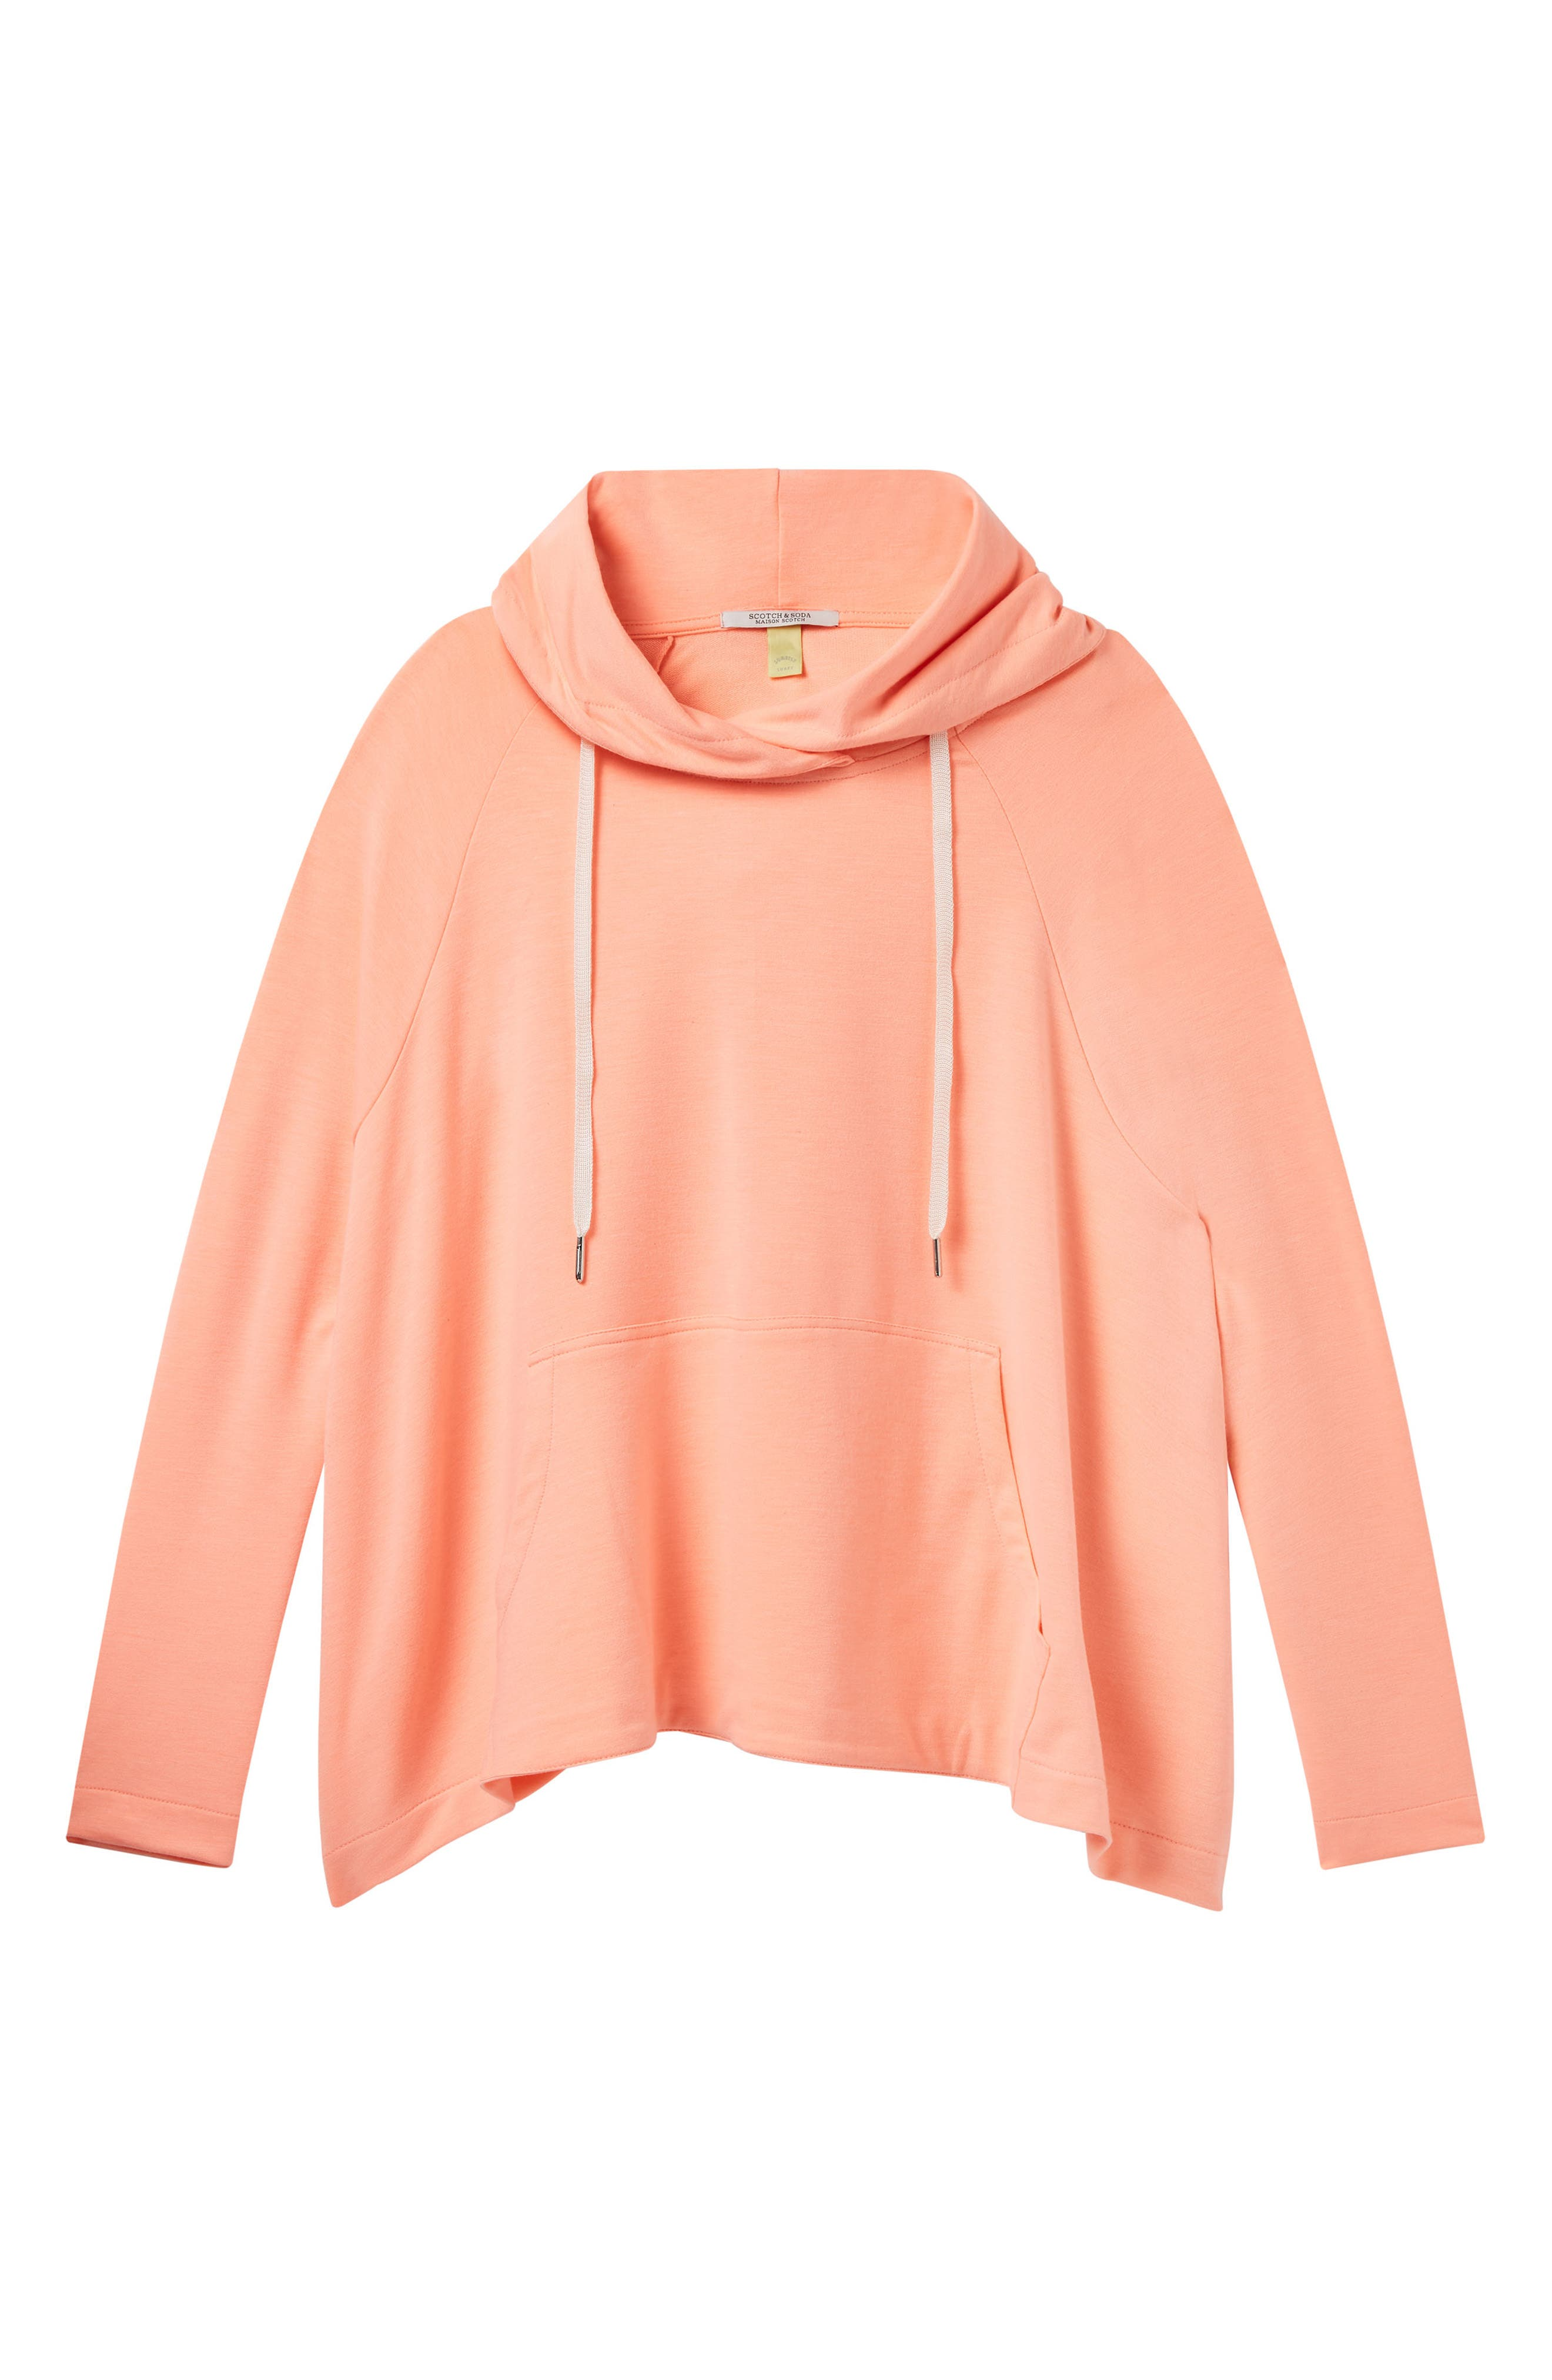 Boxy Fit Hoodie,                             Alternate thumbnail 5, color,                             COLOR 2015 CORAL